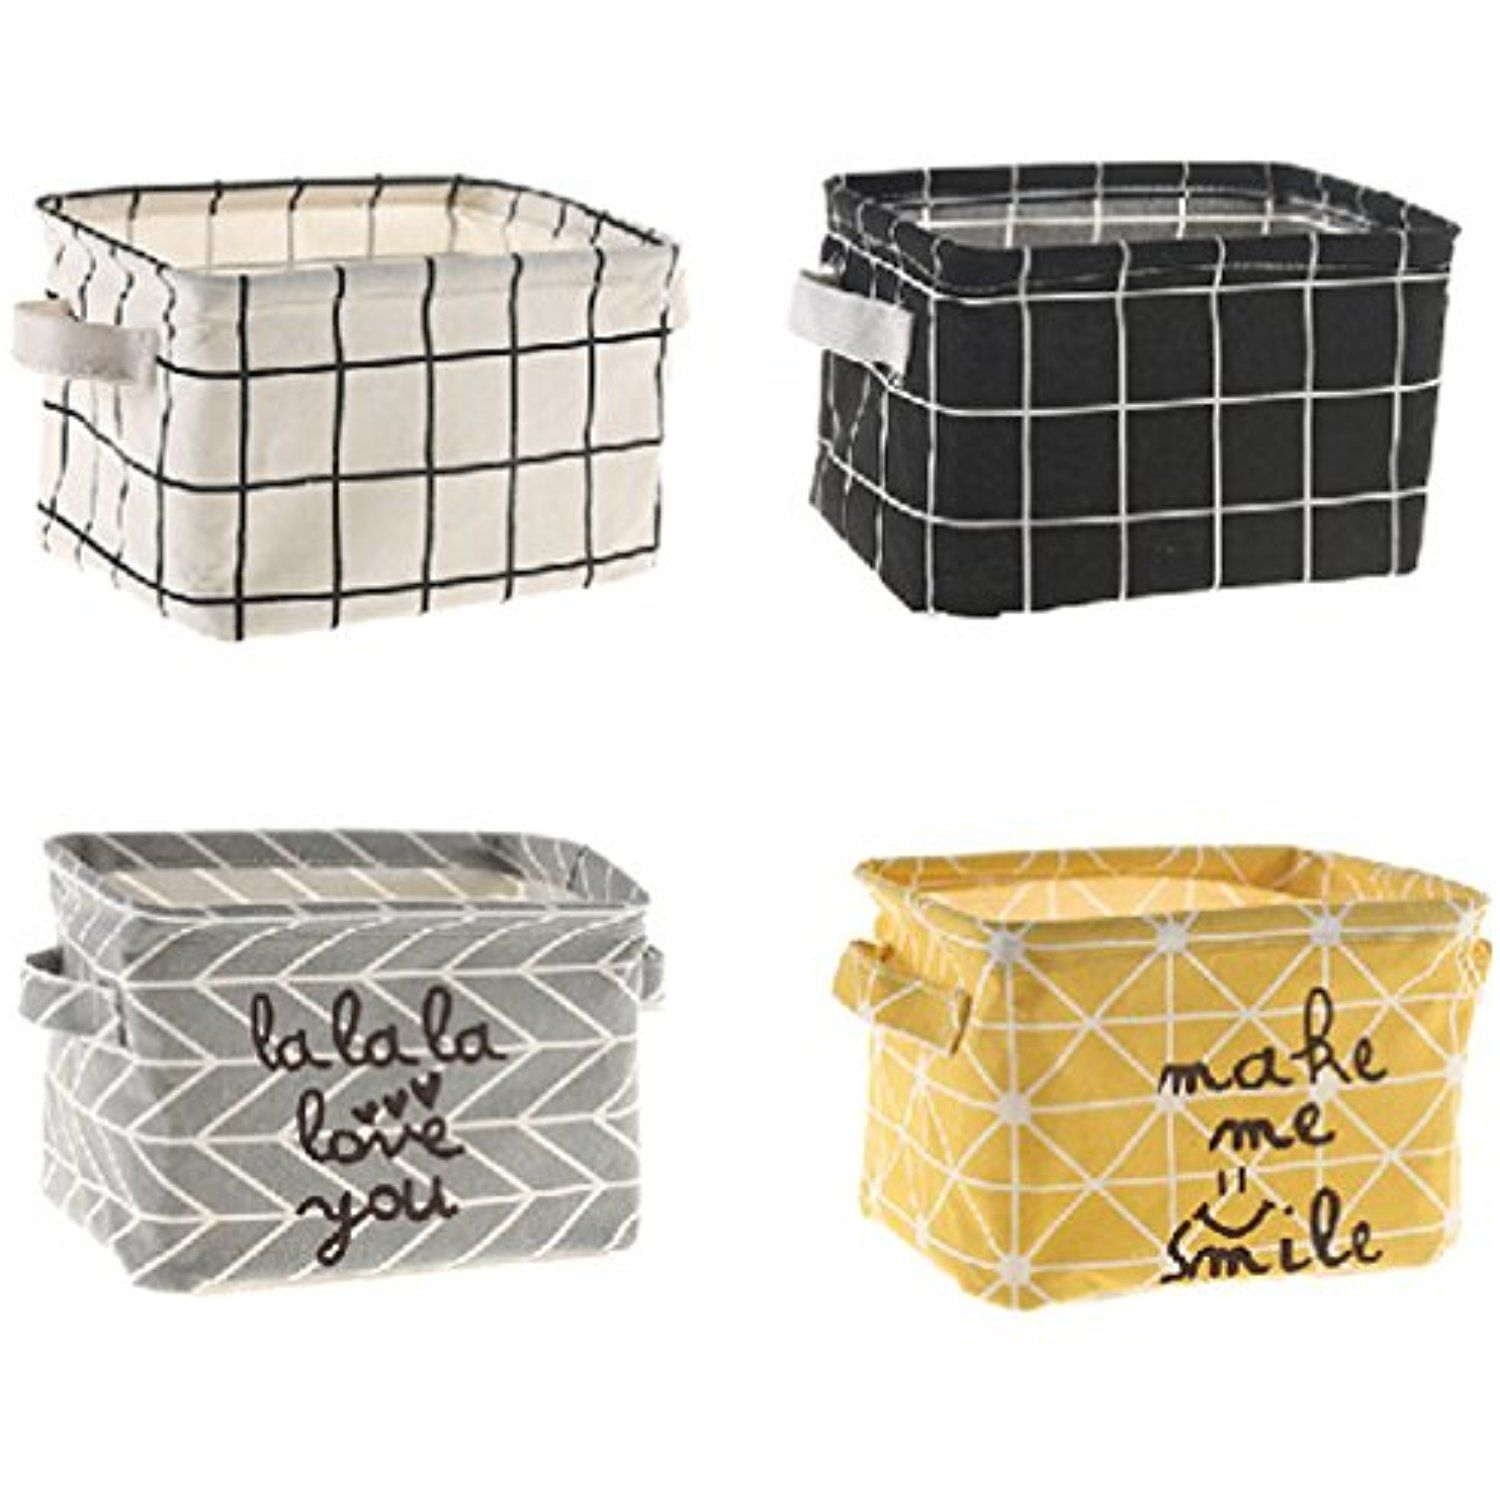 Keys Sea Team 3-Pack Cotton Rope Baskets Bowl Sewing Kits Round Open Dish for Fruits Fabric Tray Jewelry Small Woven Storage Basket Grey /& White